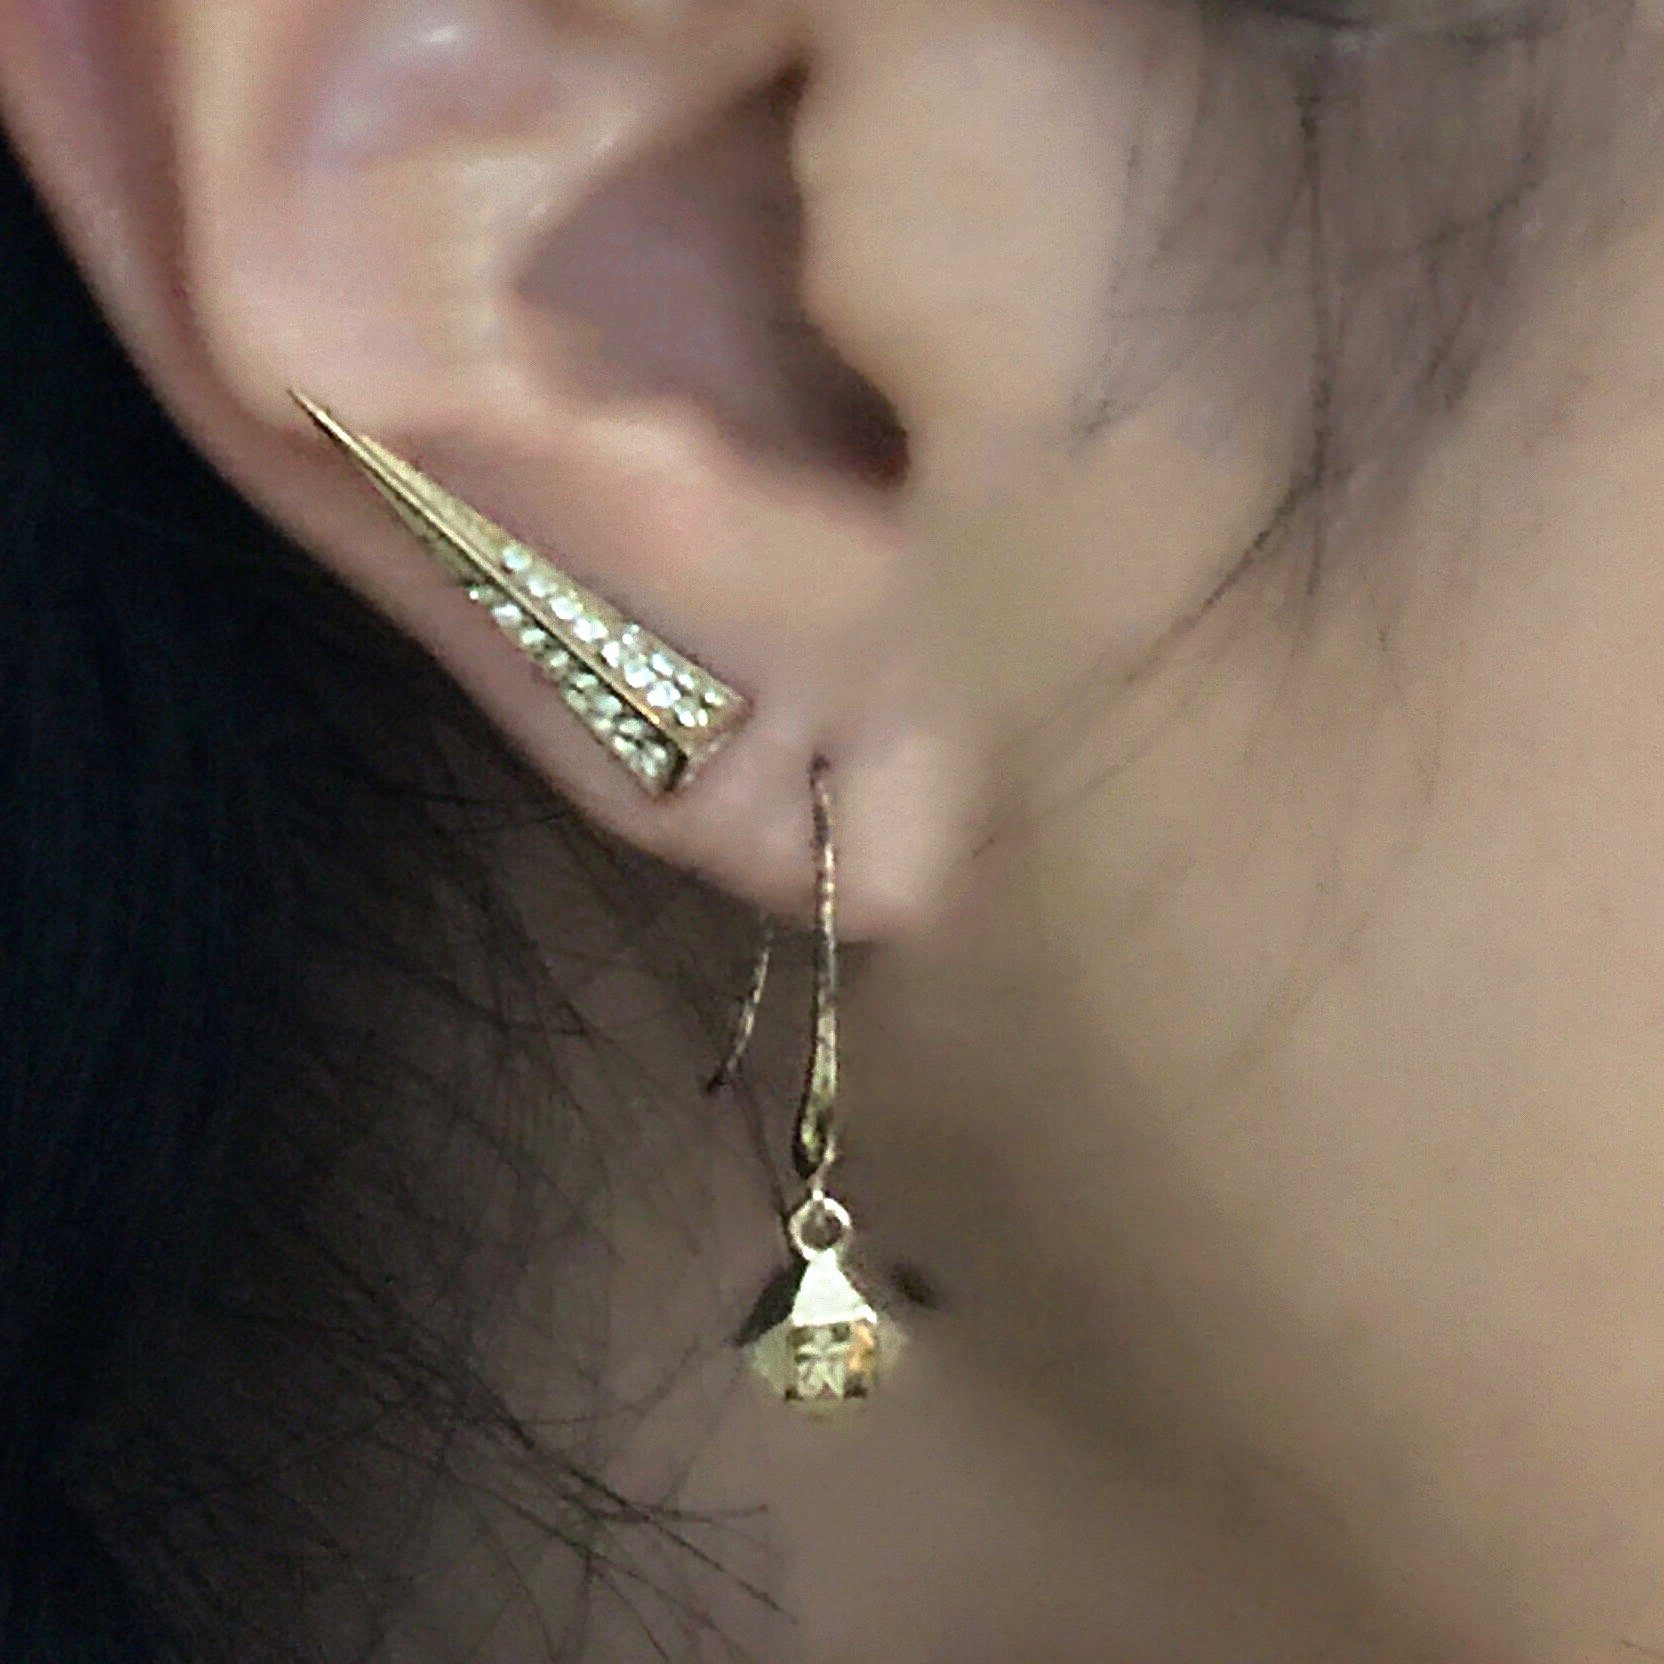 Close up of Mantra Dagger with Swarovski Crystal earrings and Mantra Cube Earrings